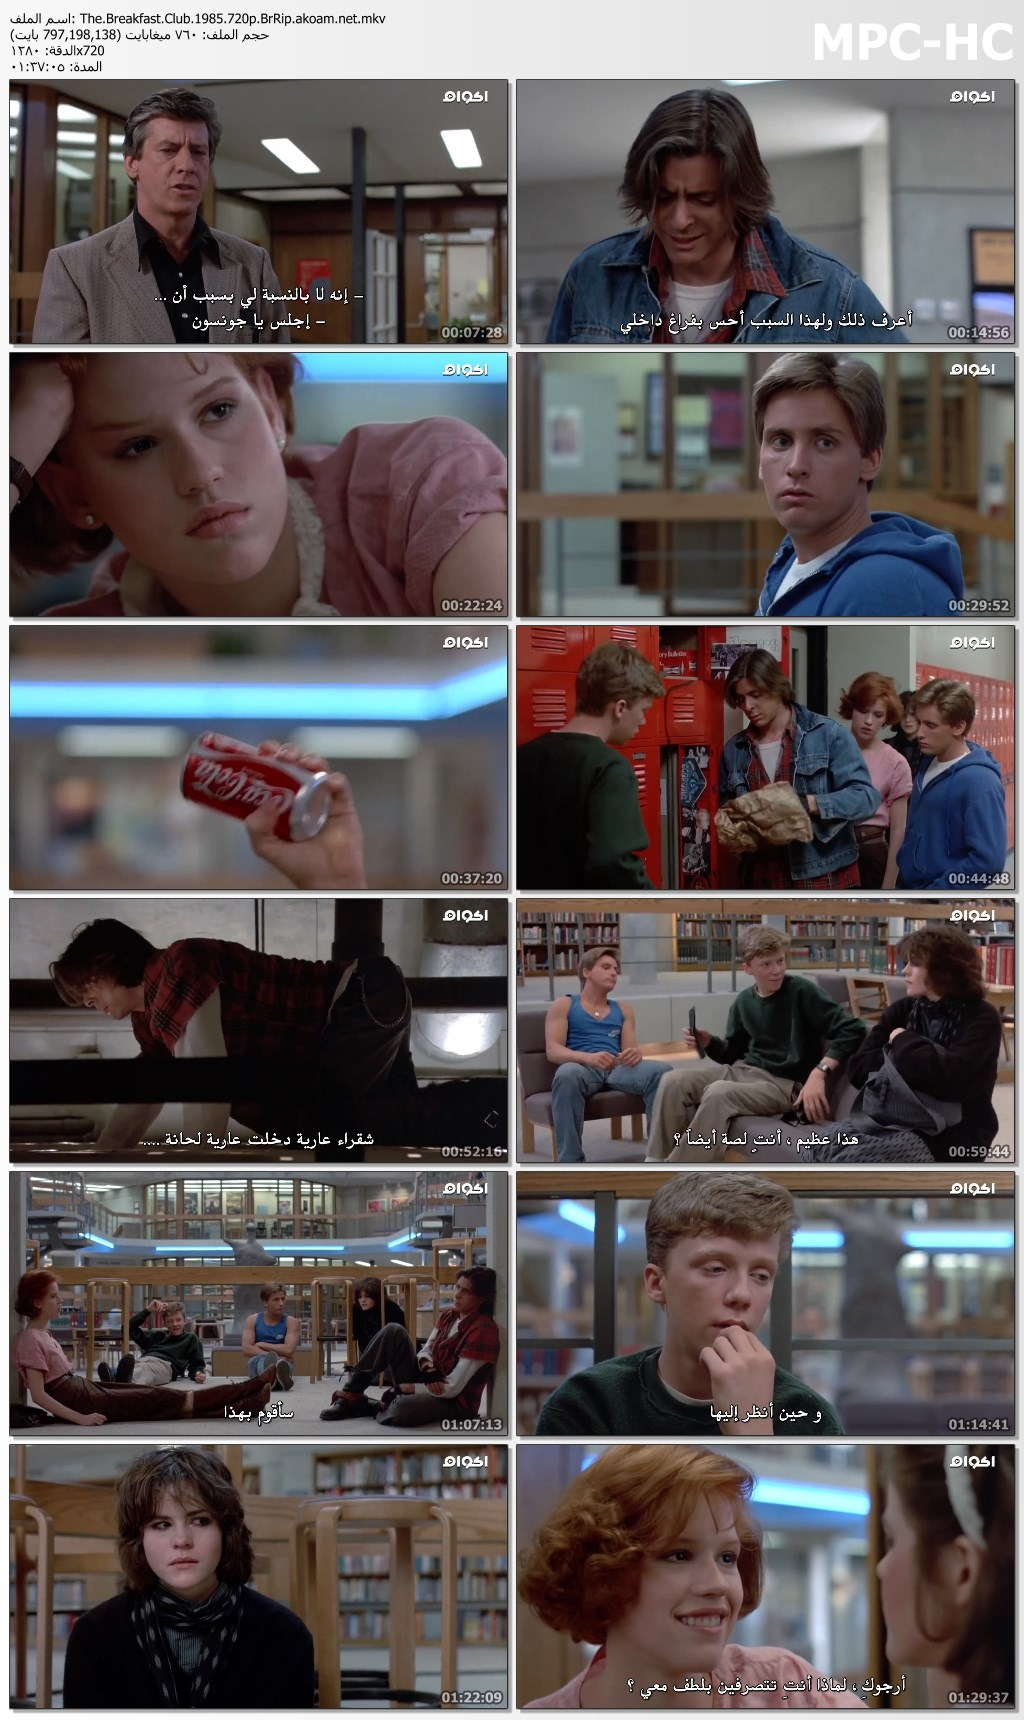 The Breakfast Club,The Breakfast Club 1985